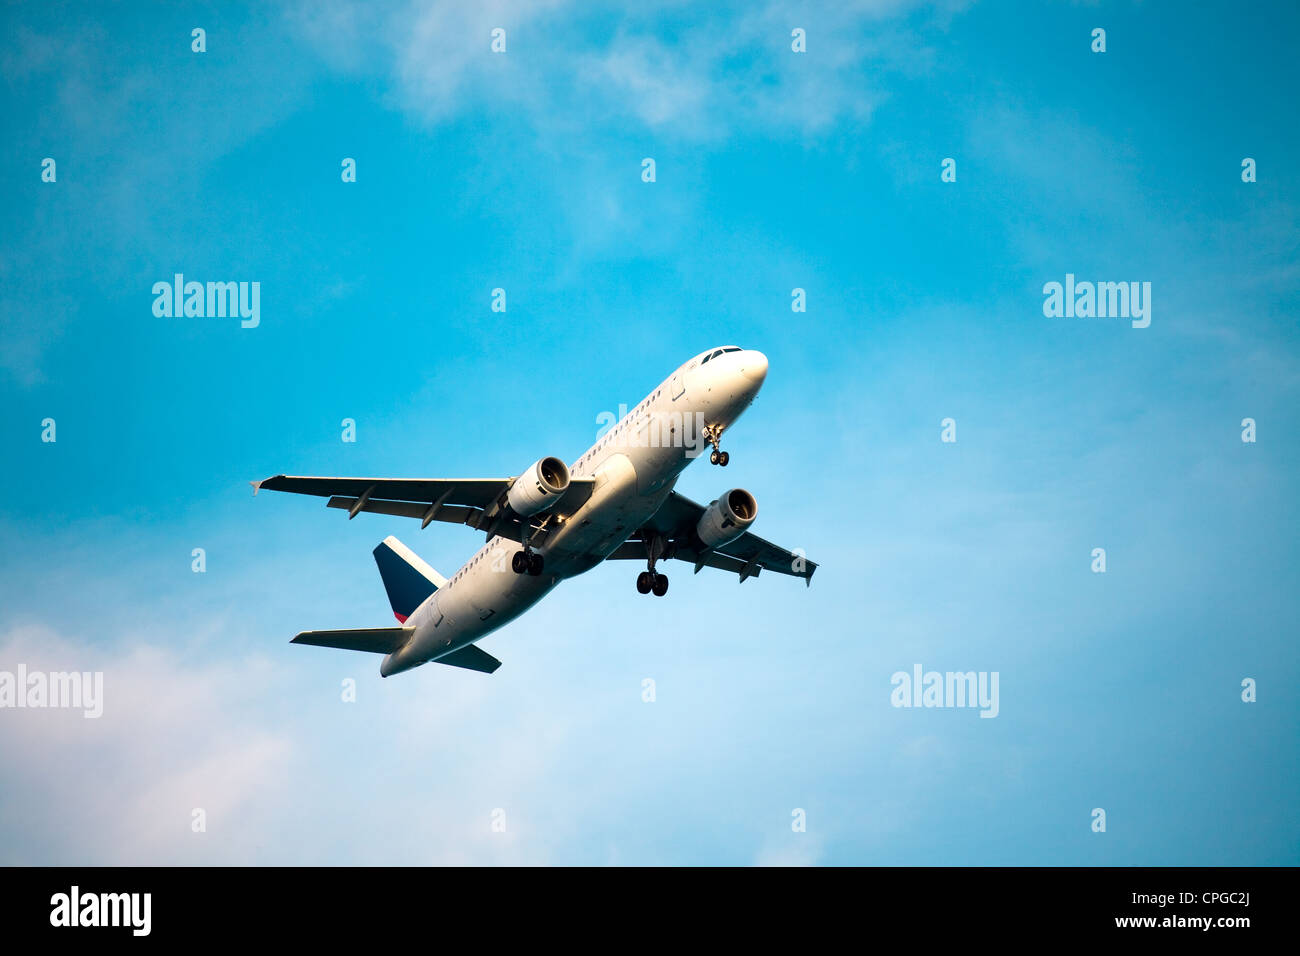 Commercial airplane take off - Stock Image